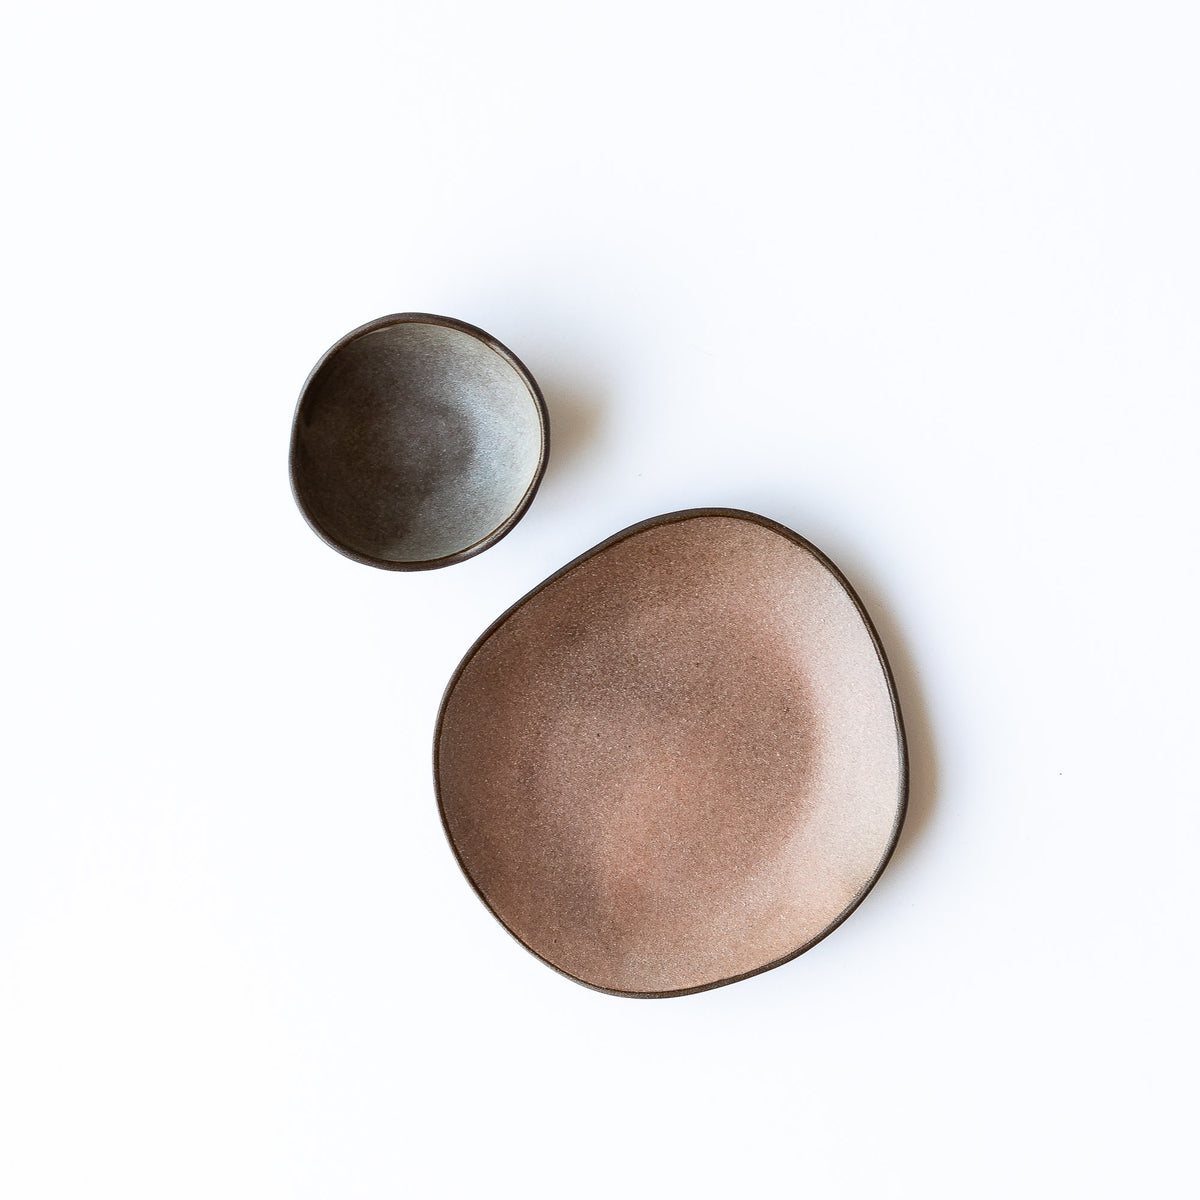 Top View - Handmade Organic Shaped Stoneware Plates of Different Size - Sold by Chic & Basta